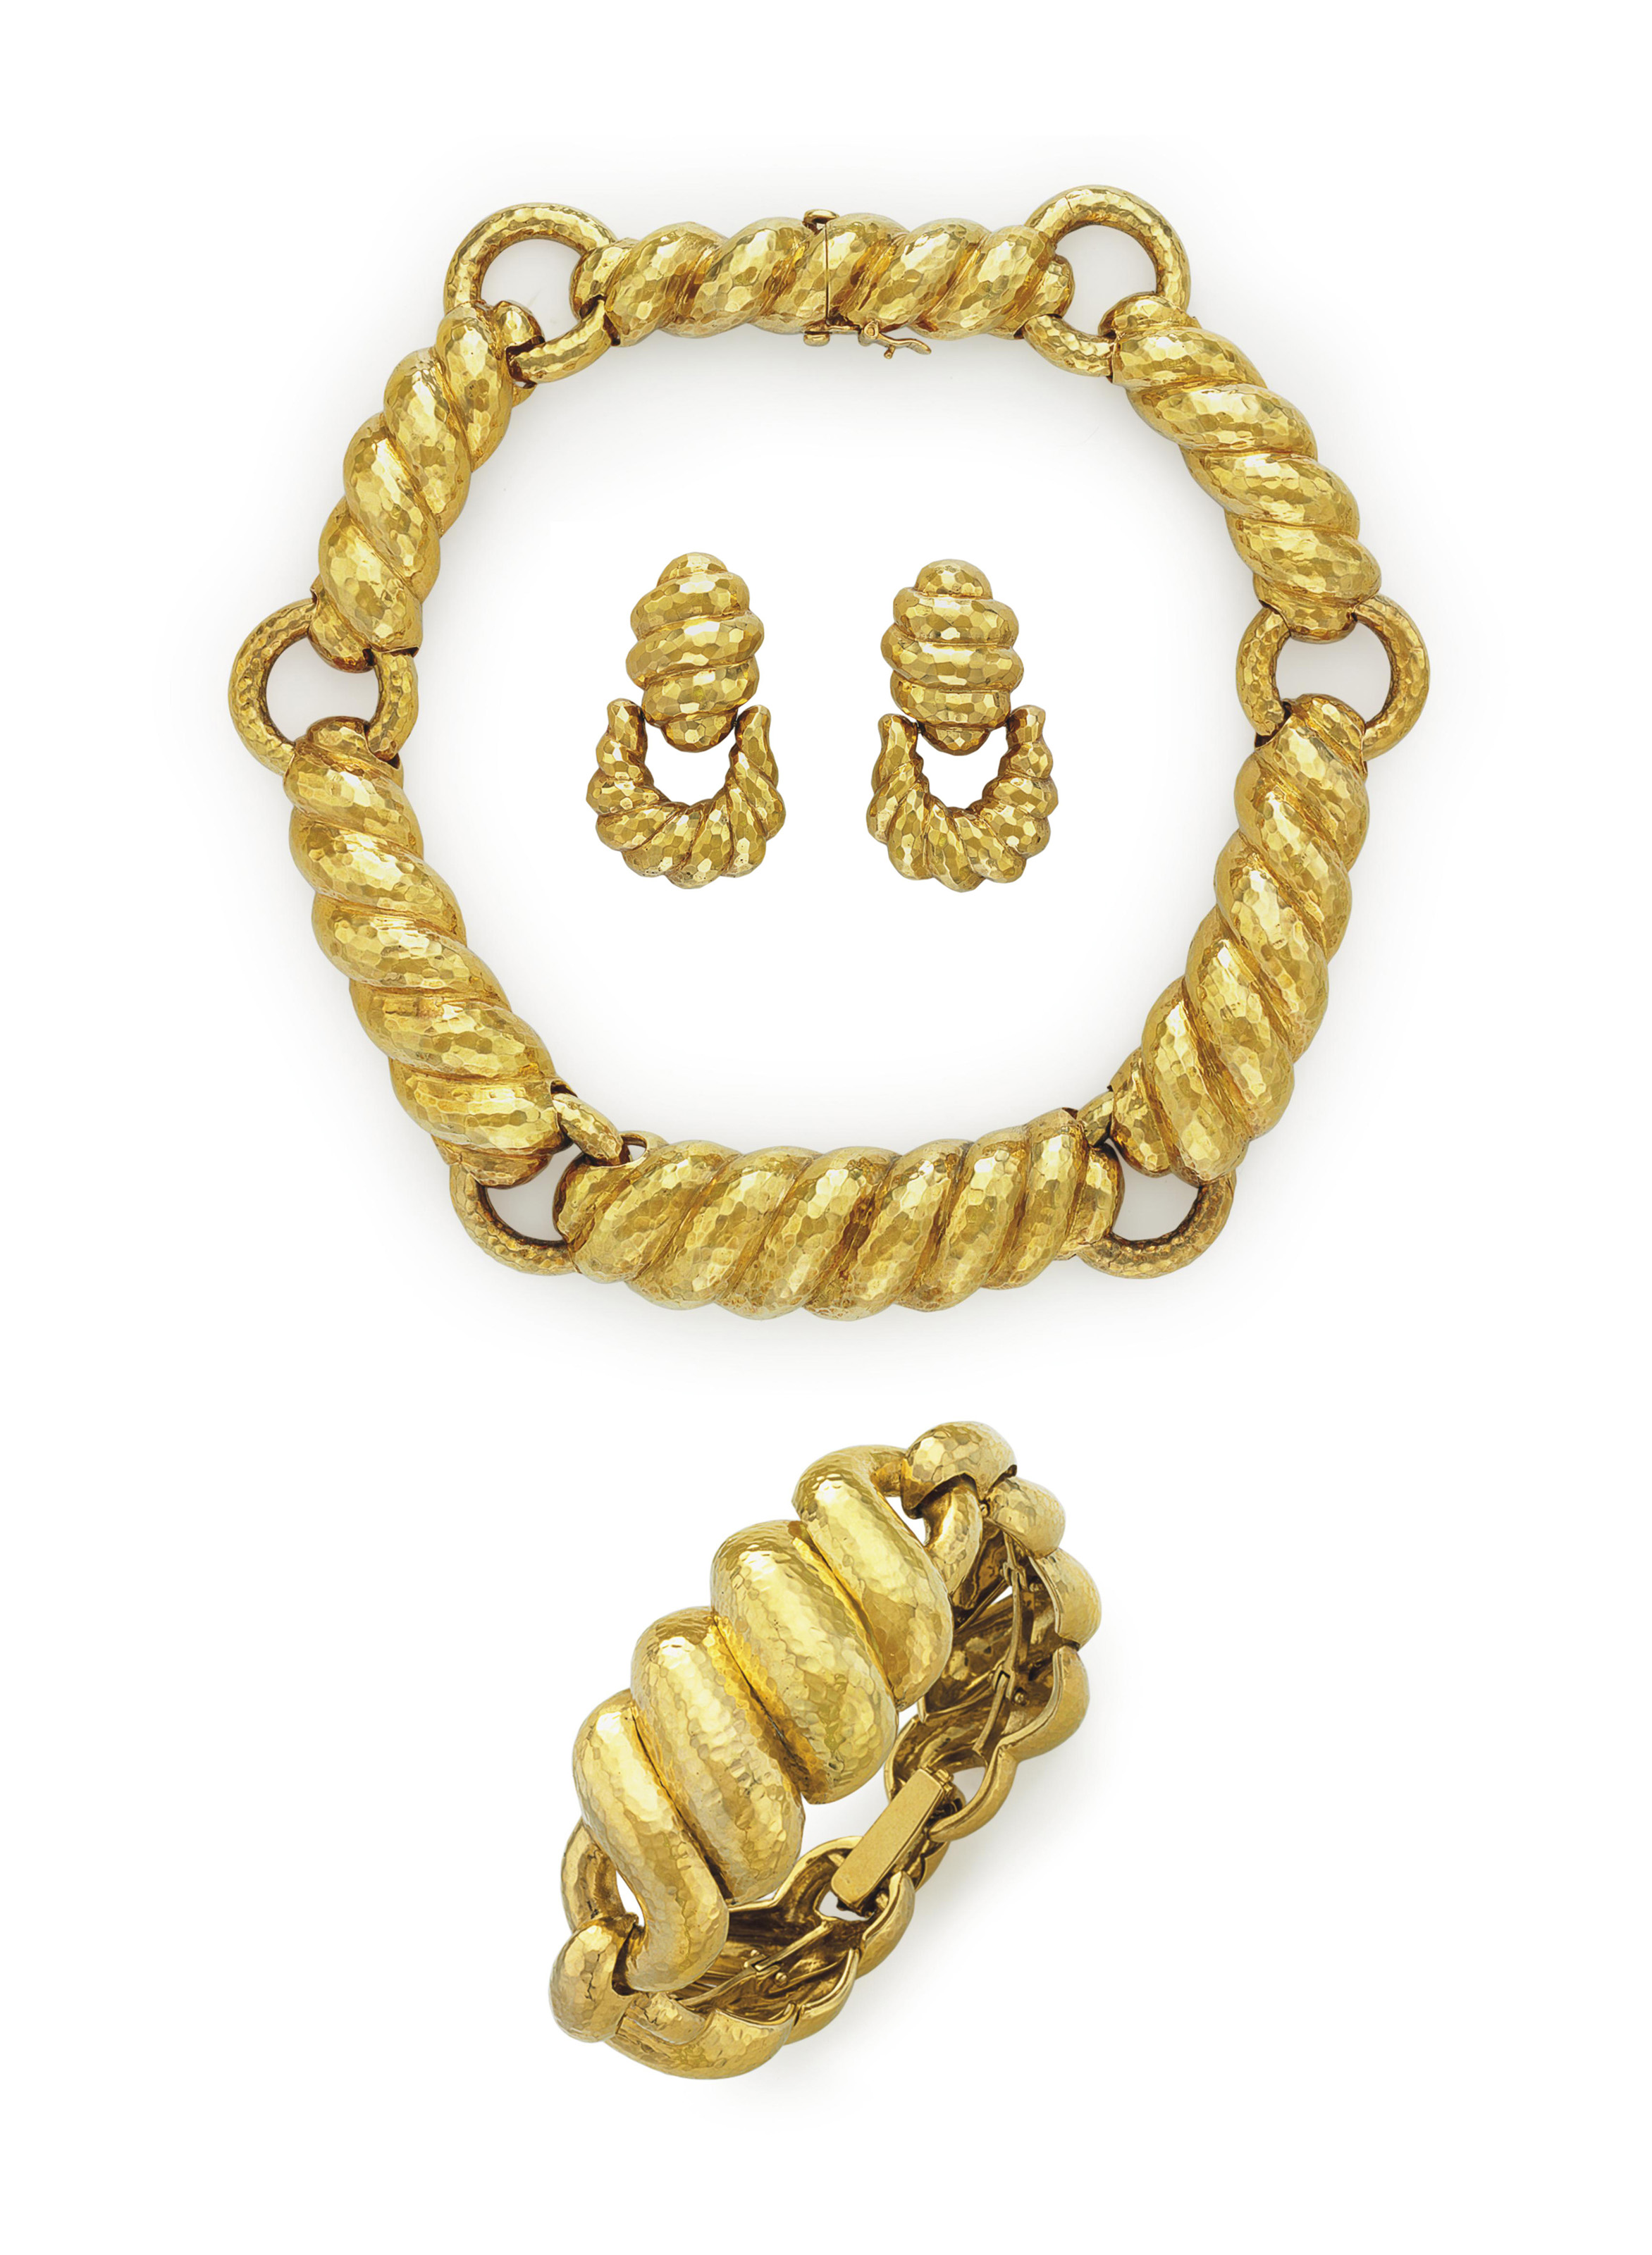 A SUITE OF GOLD JEWELRY, BY DAVID WEBB